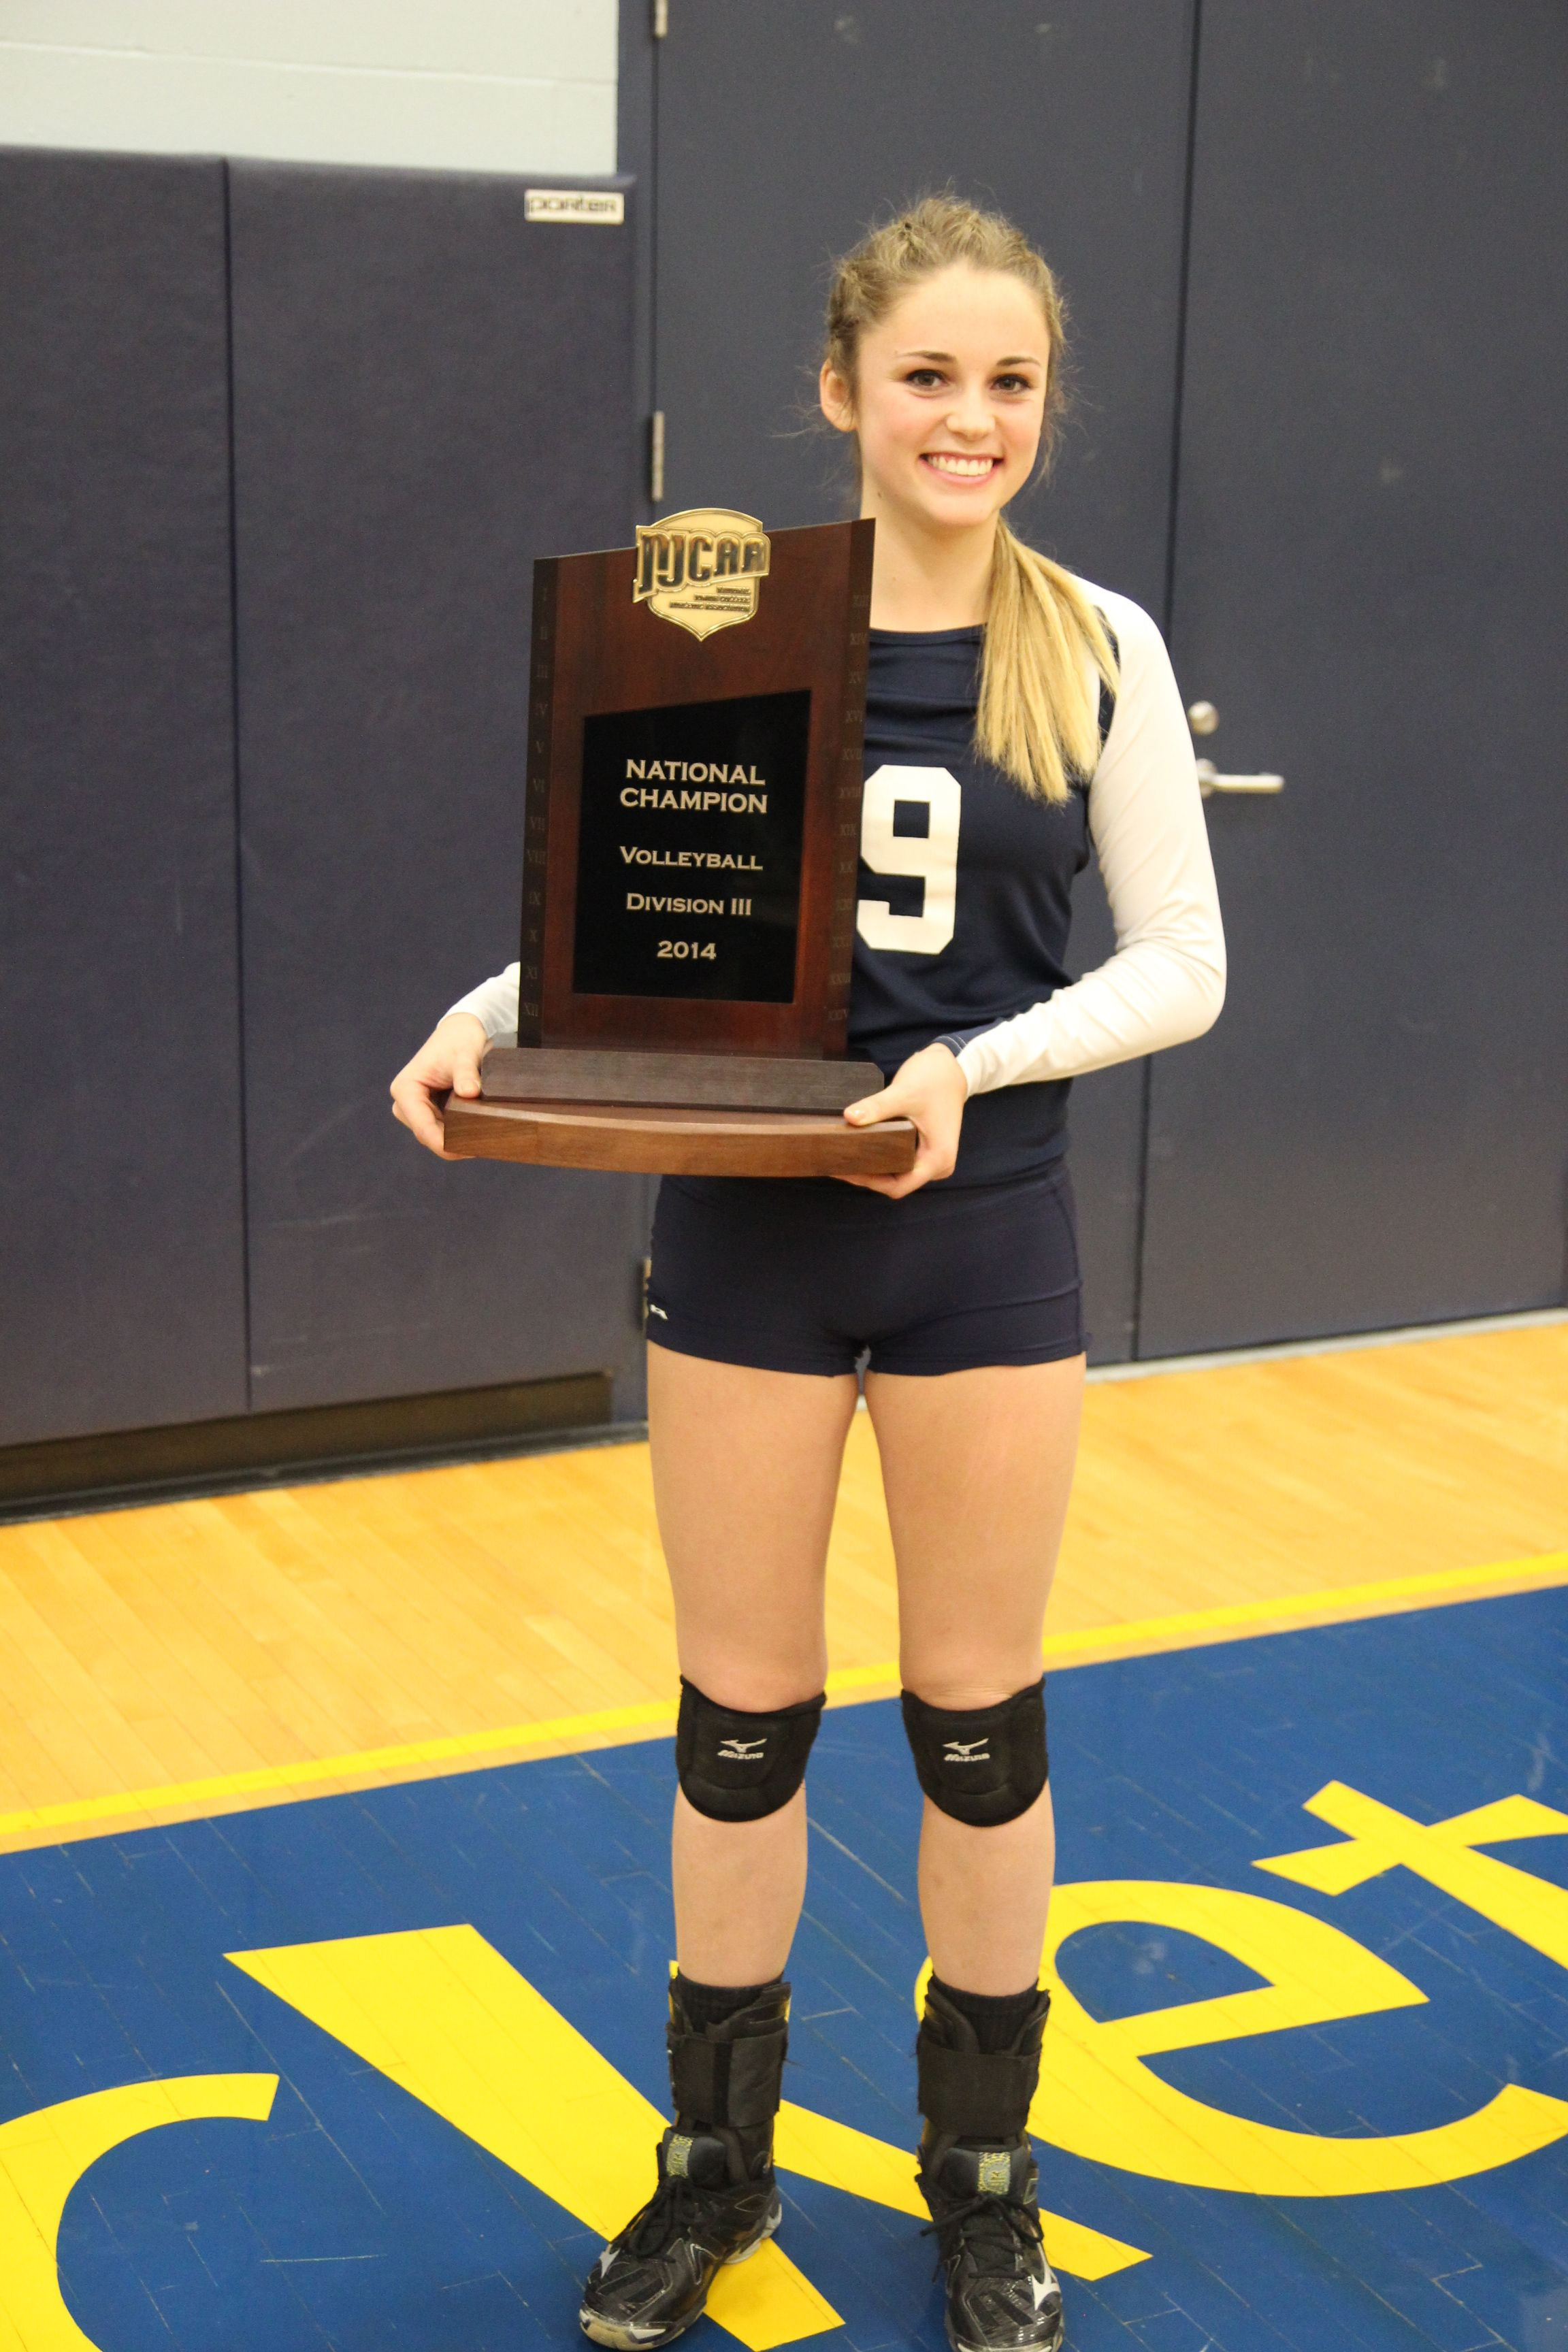 Njcaa Diii First Team All American Hannah Grahn With The National Championship Trophy Grahn Was Also A Part Of Women Volleyball One Team National Championship